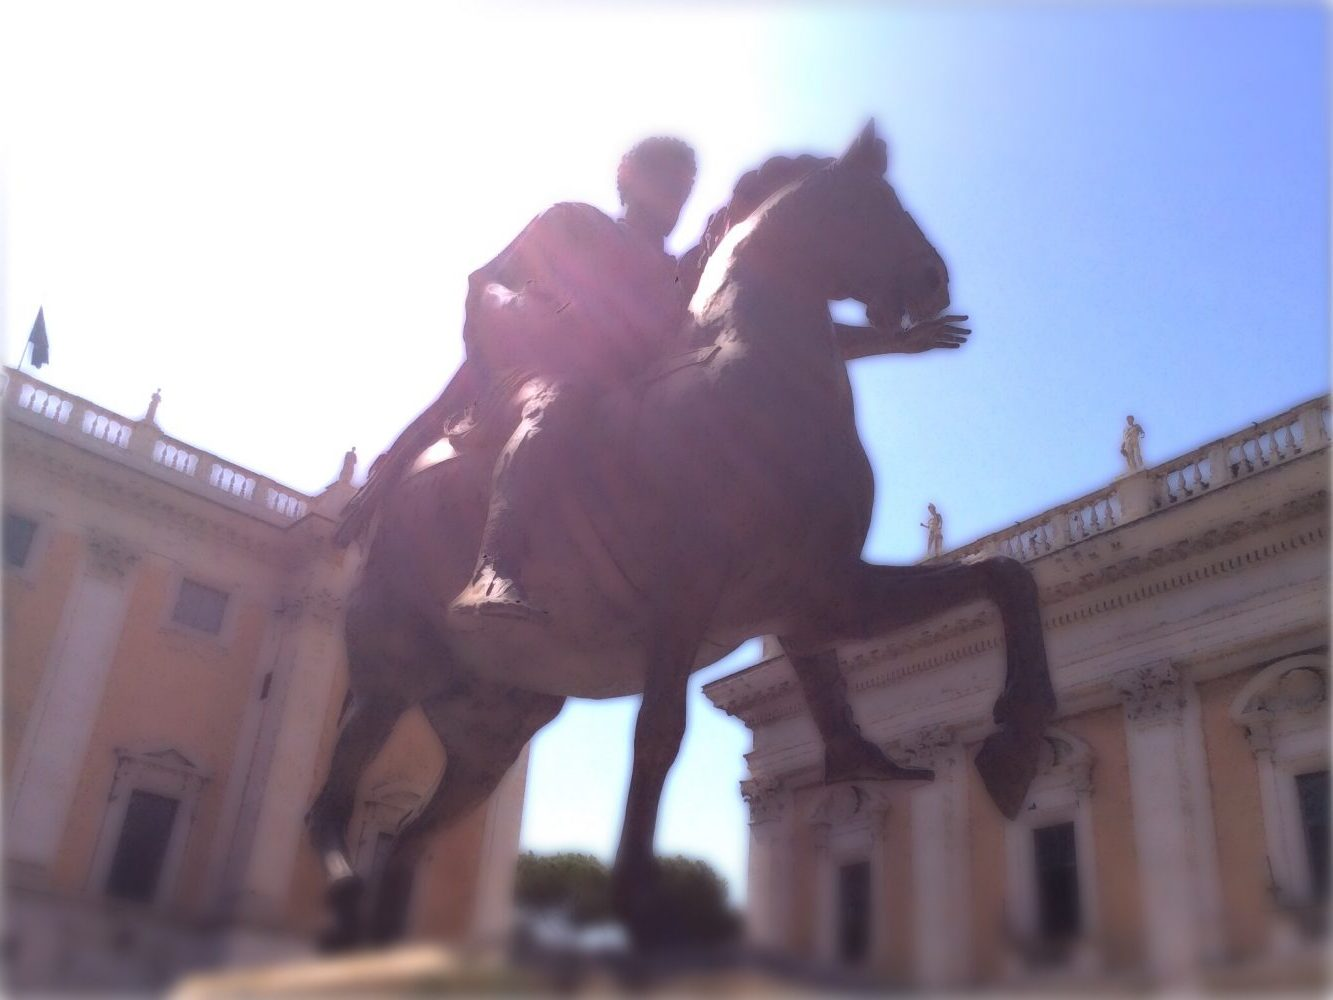 Horse & rider racing. Dazzling sunlight. Classical architecture.